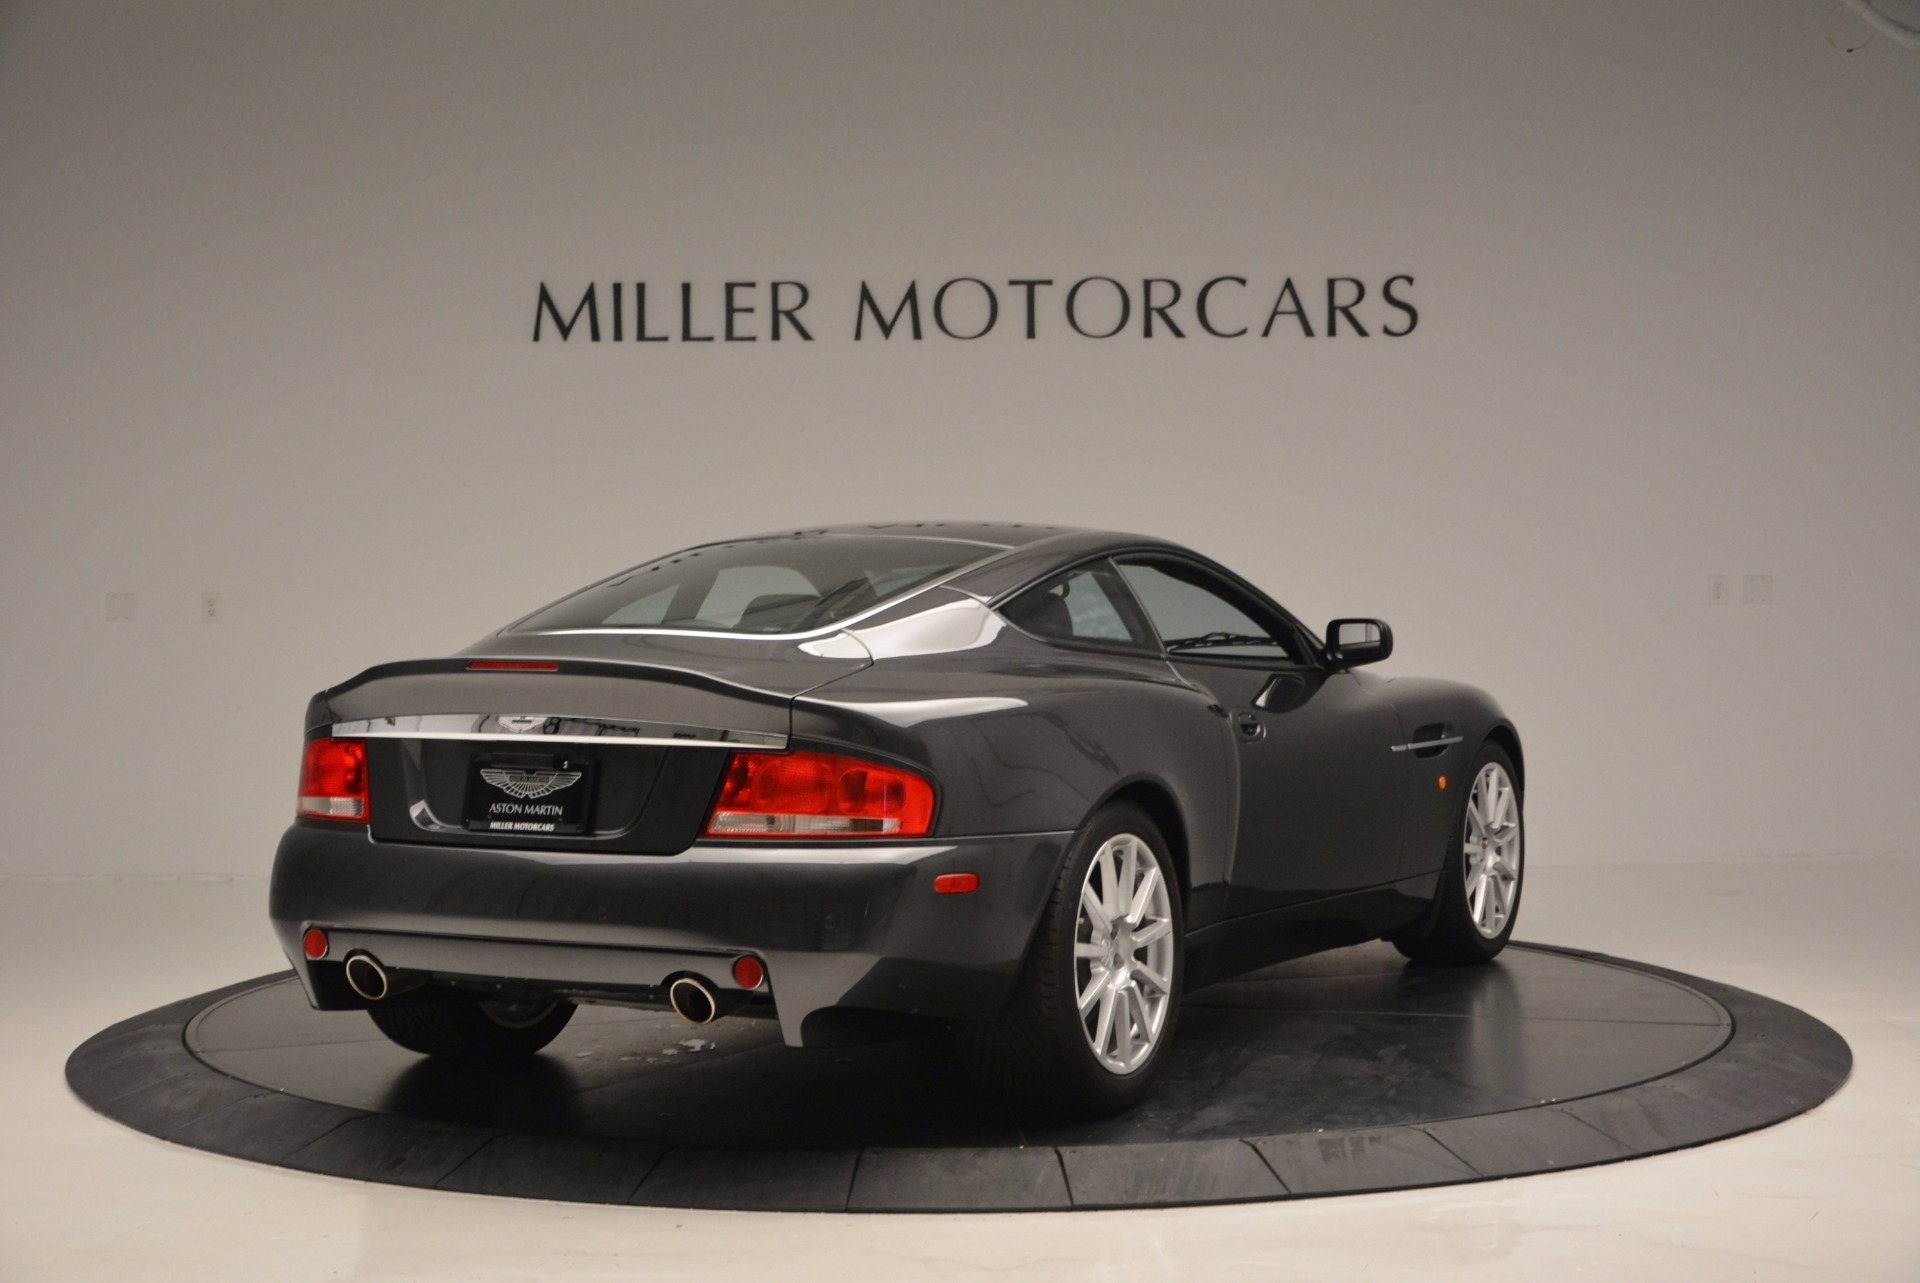 Used 2005 Aston Martin V12 Vanquish S For Sale In Greenwich, CT. Alfa Romeo of Greenwich, 7097 645_p7